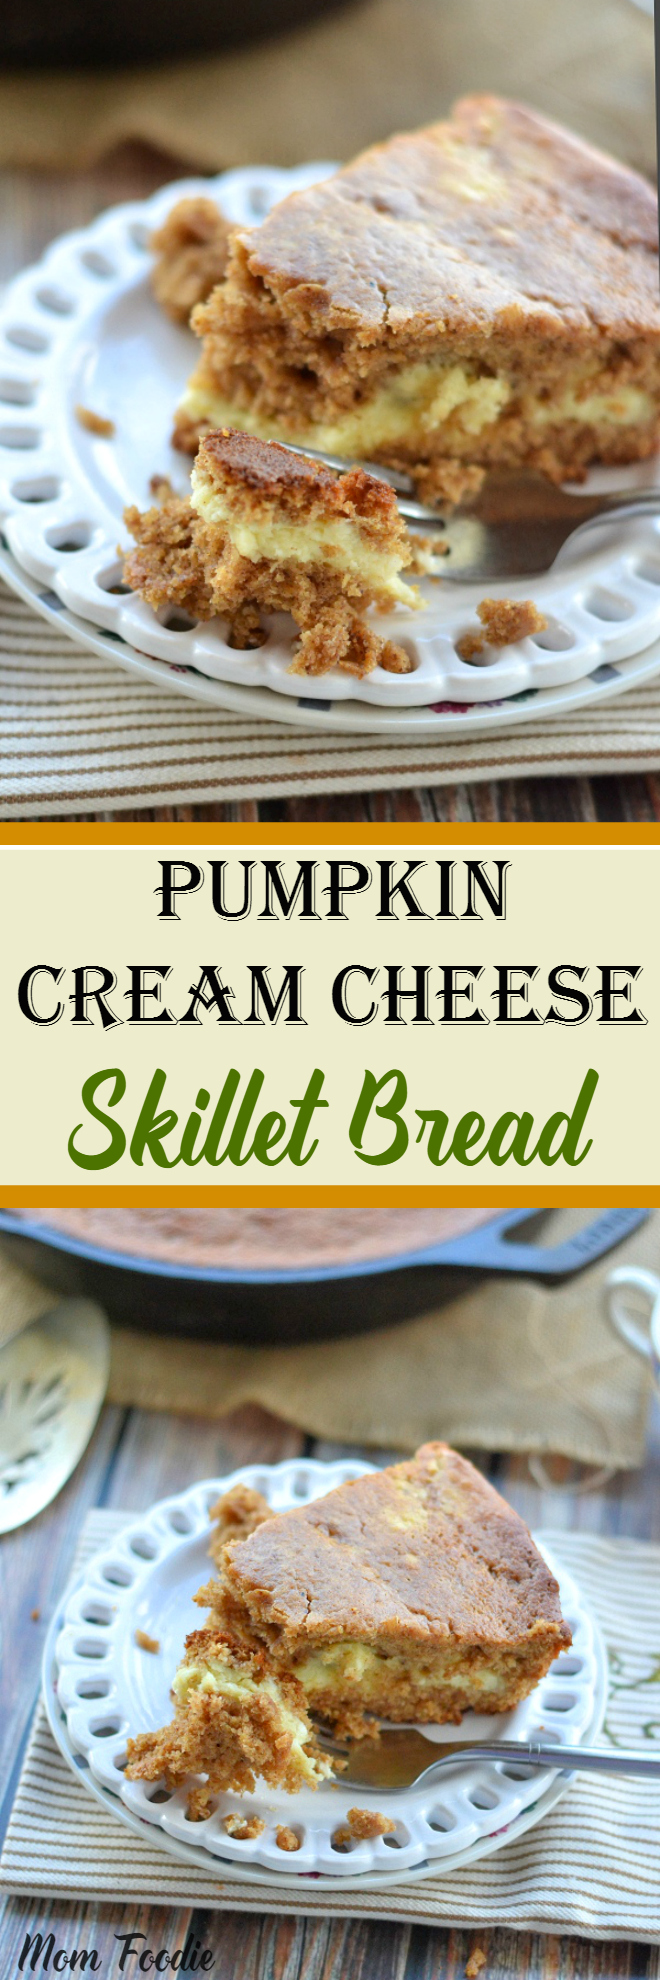 Pumpkin Cream Cheese Skillet Bread